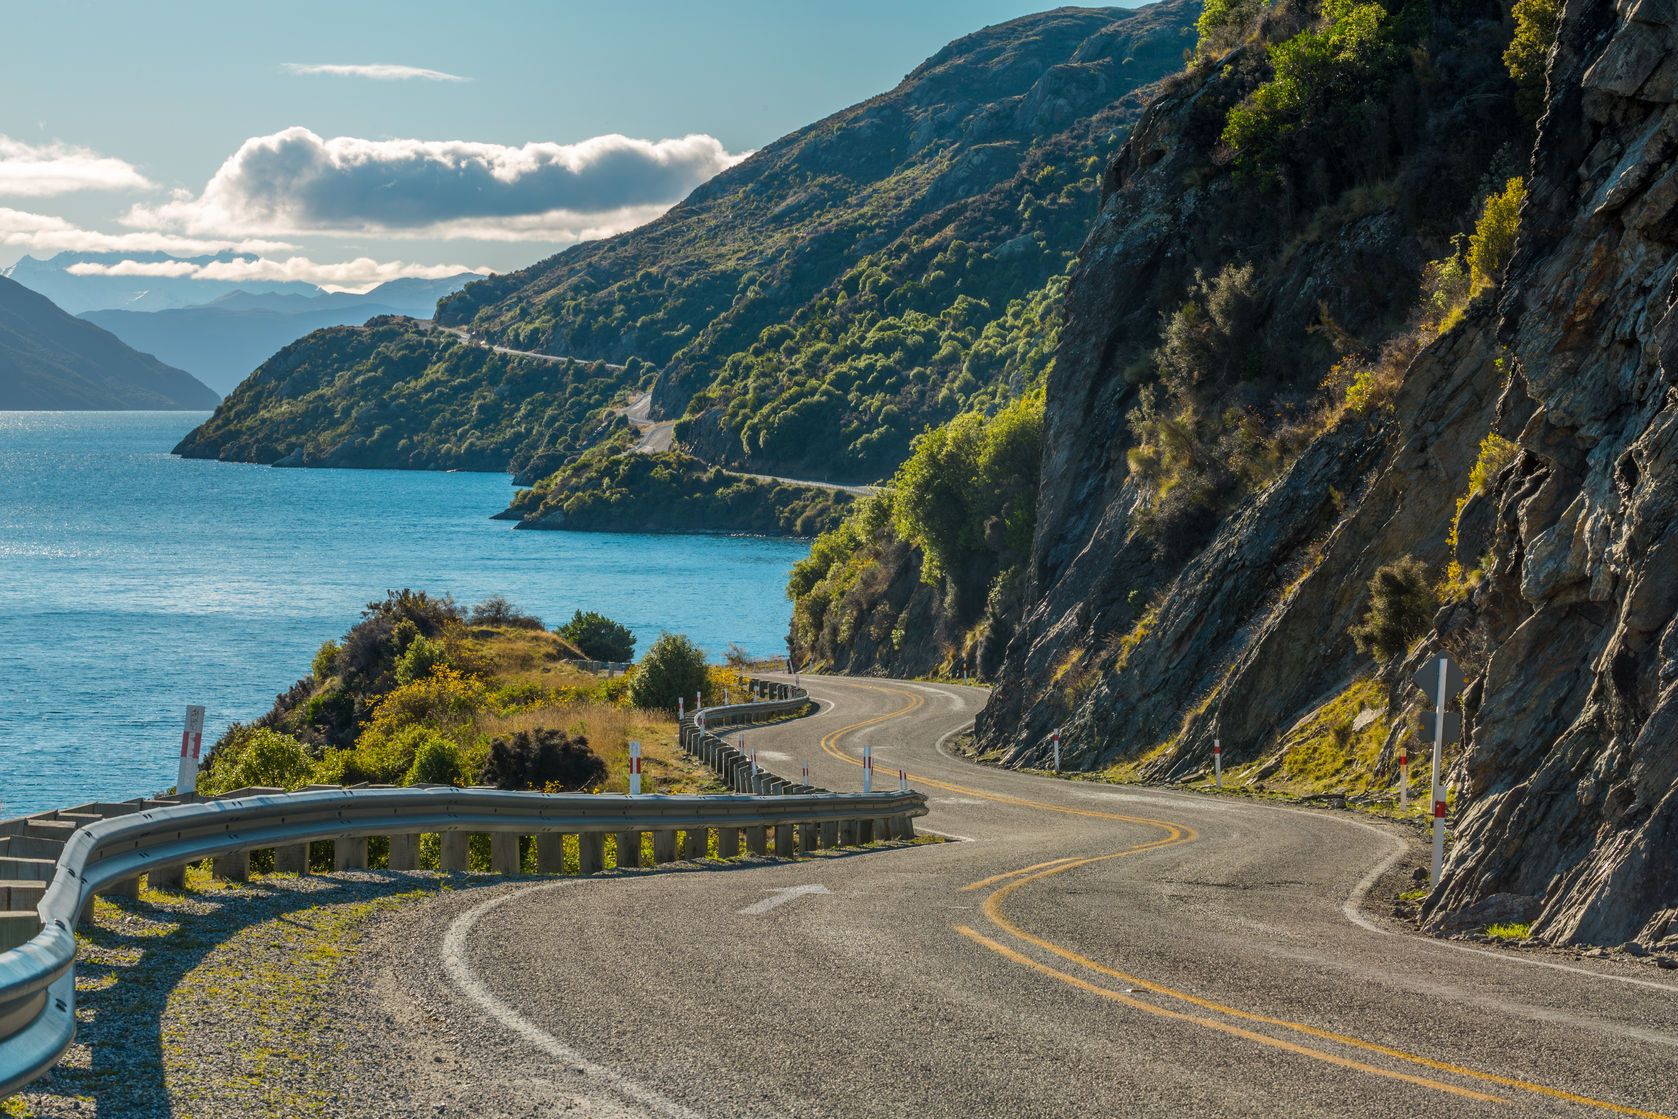 44358547 - road along lake wakatipu, queenstown, new zealand